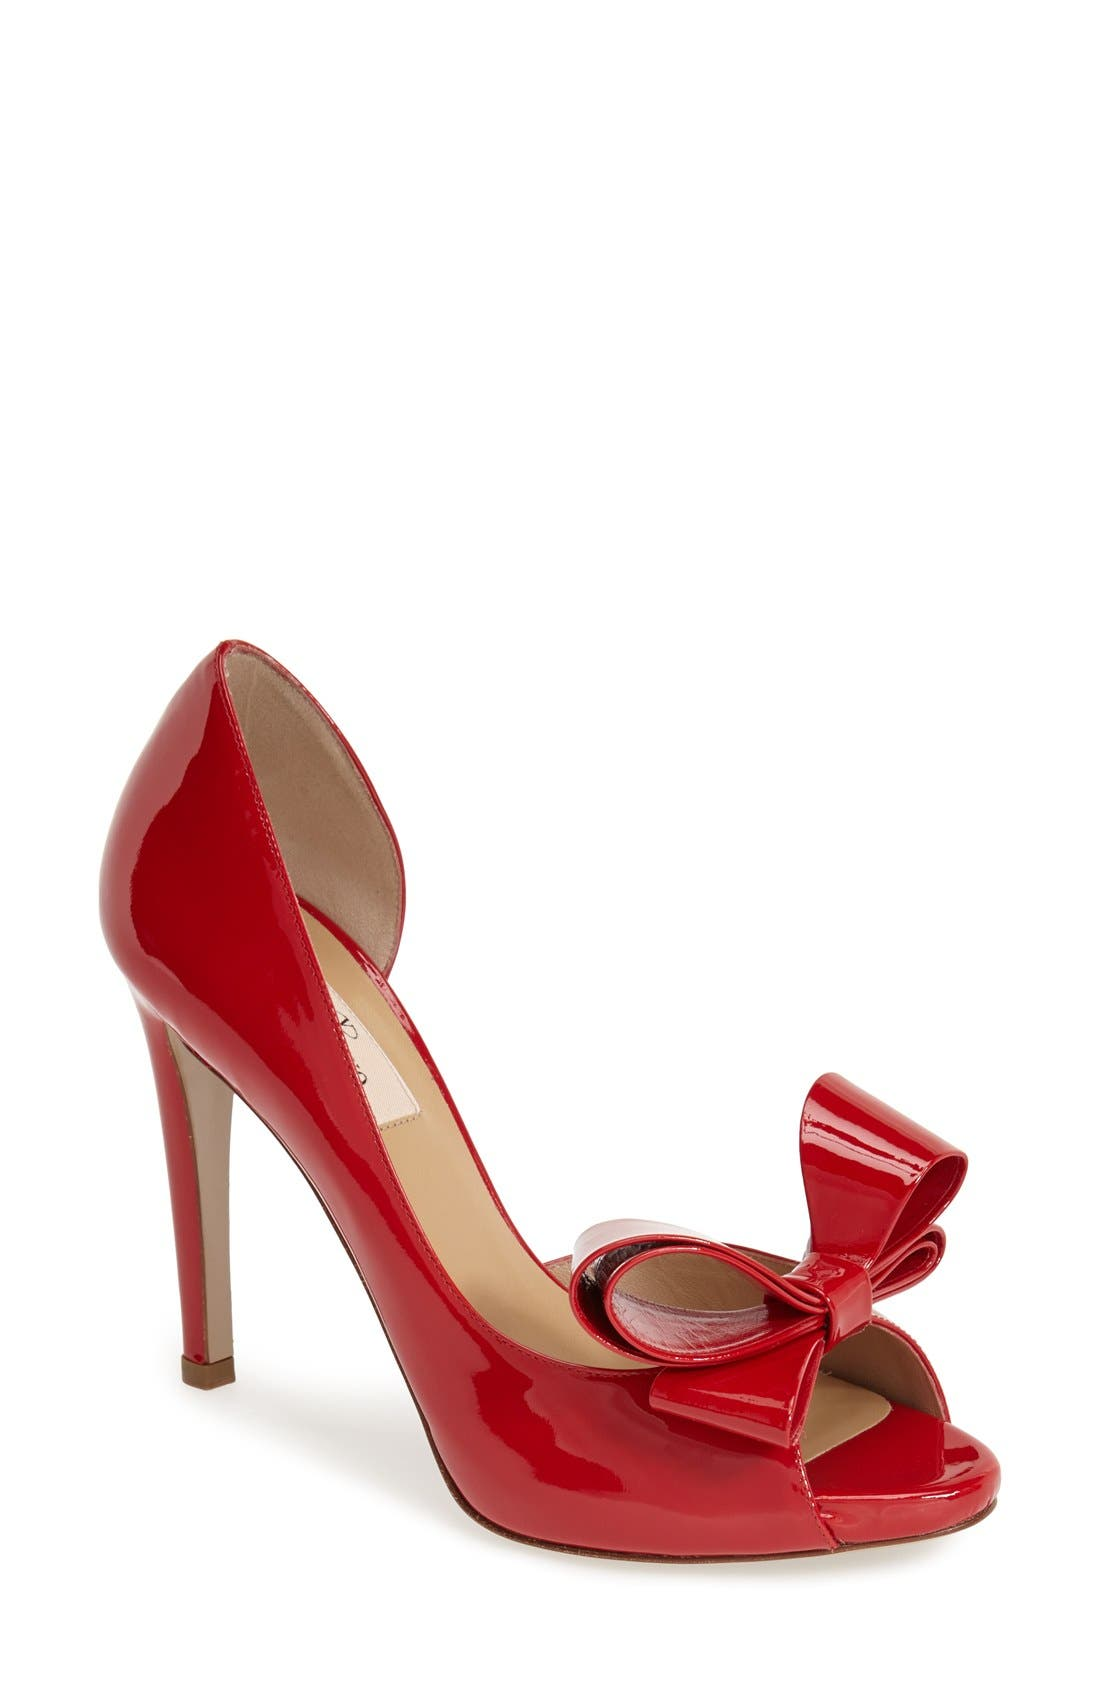 Alternate Image 1 Selected - Valentino Couture Bow d'Orsay Pump (Women)